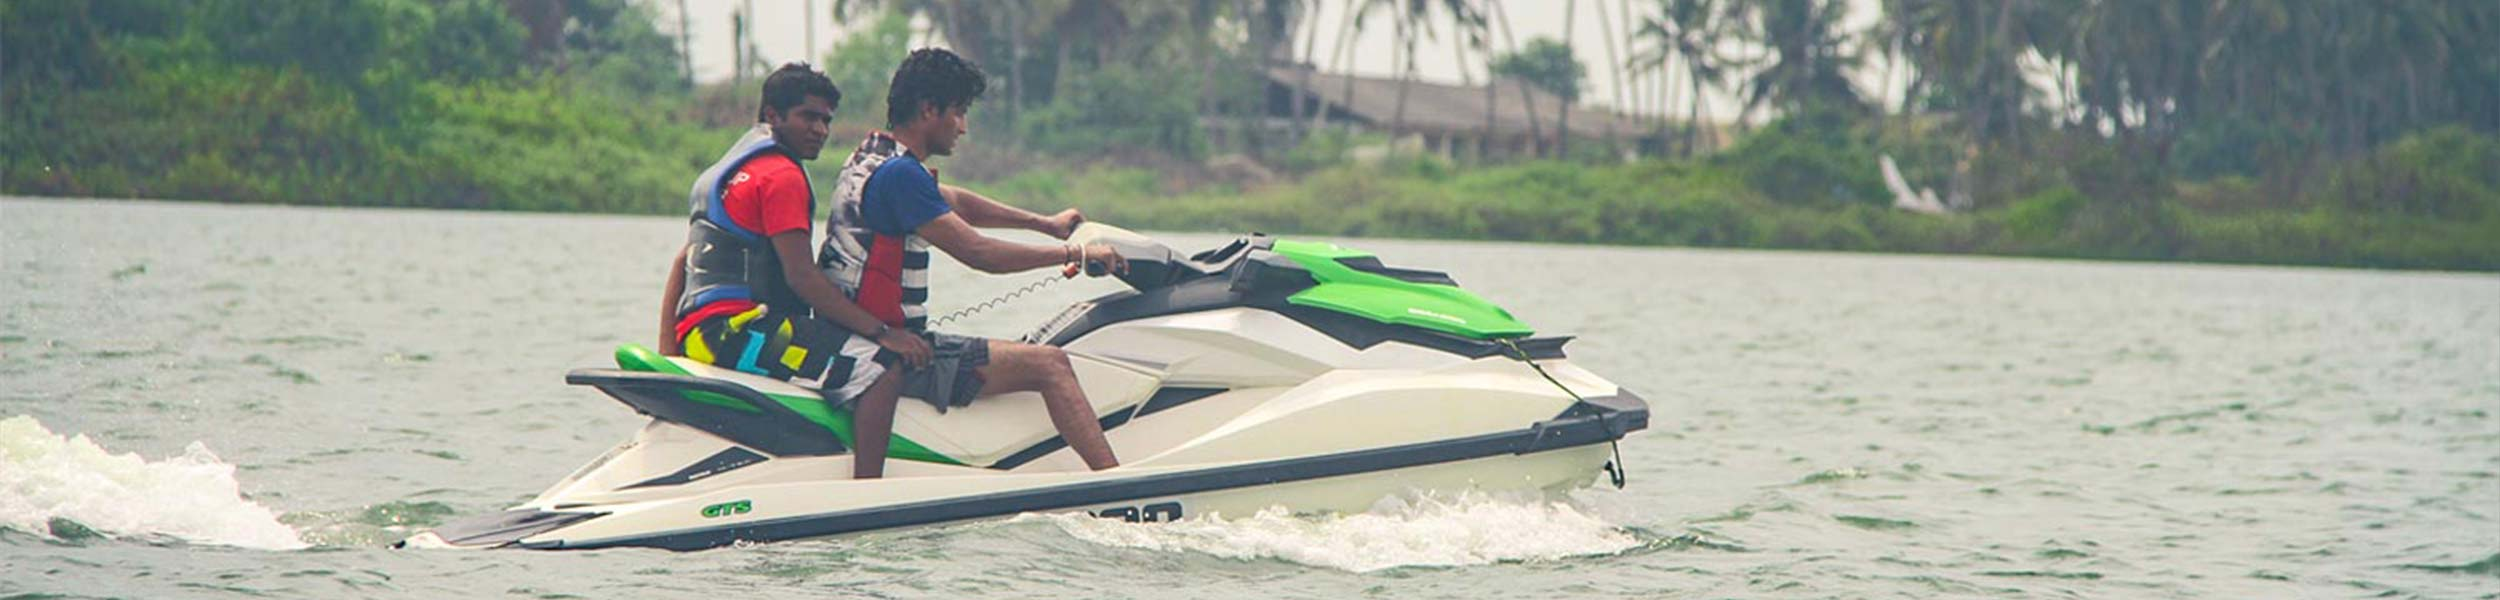 jet-ski and Wakeboarding at Mantra Surf Club